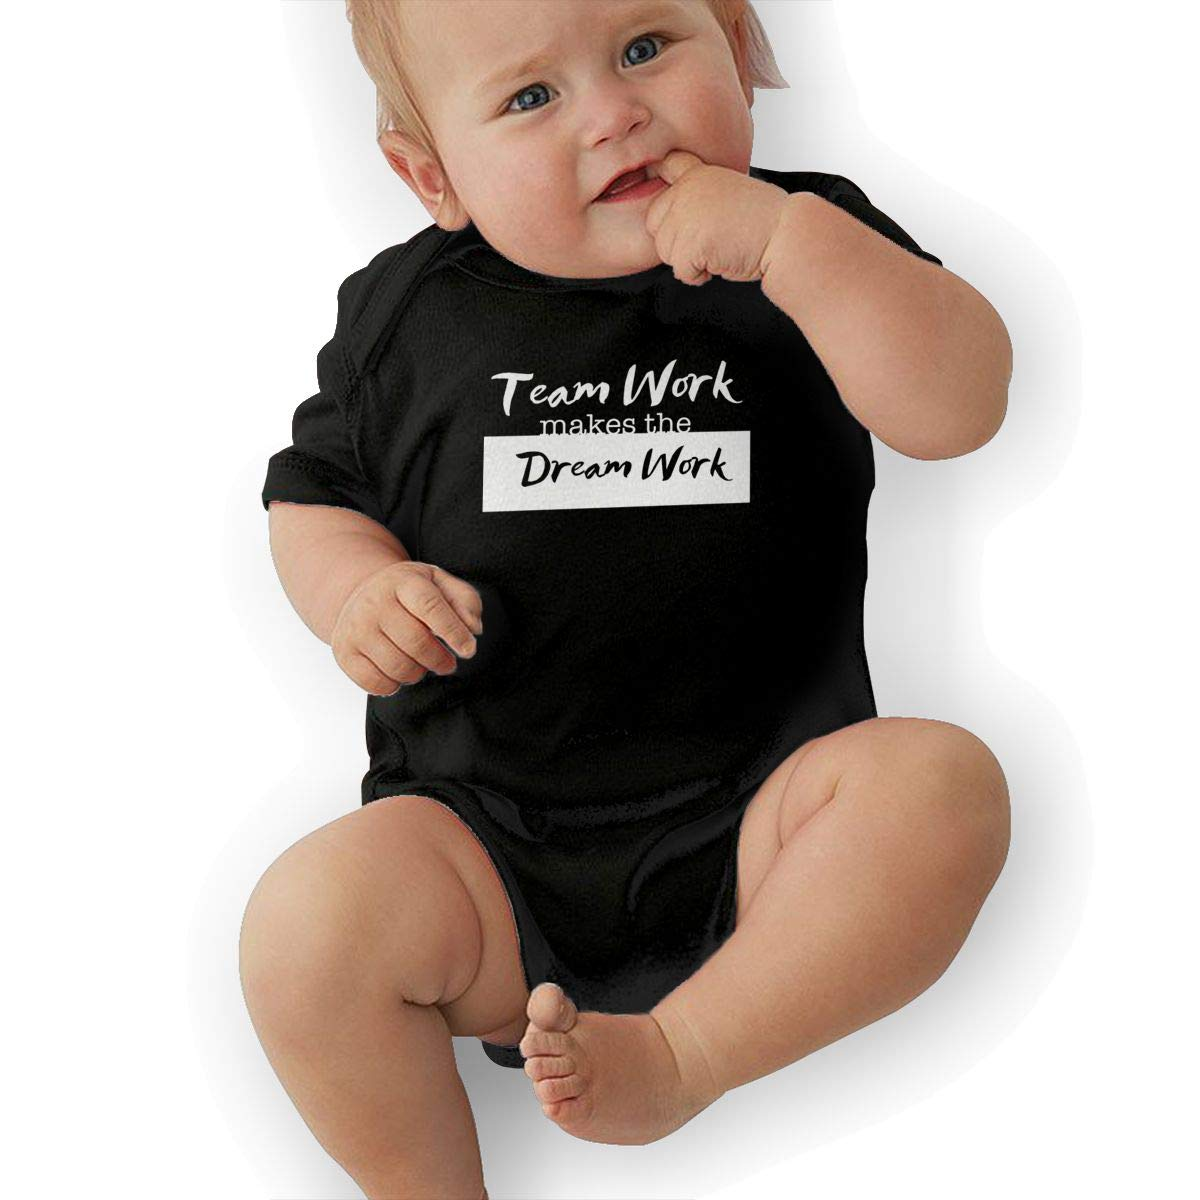 HappyLifea The Dream Work Baby Pajamas Bodysuits Clothes Onesies Jumpsuits Outfits Black